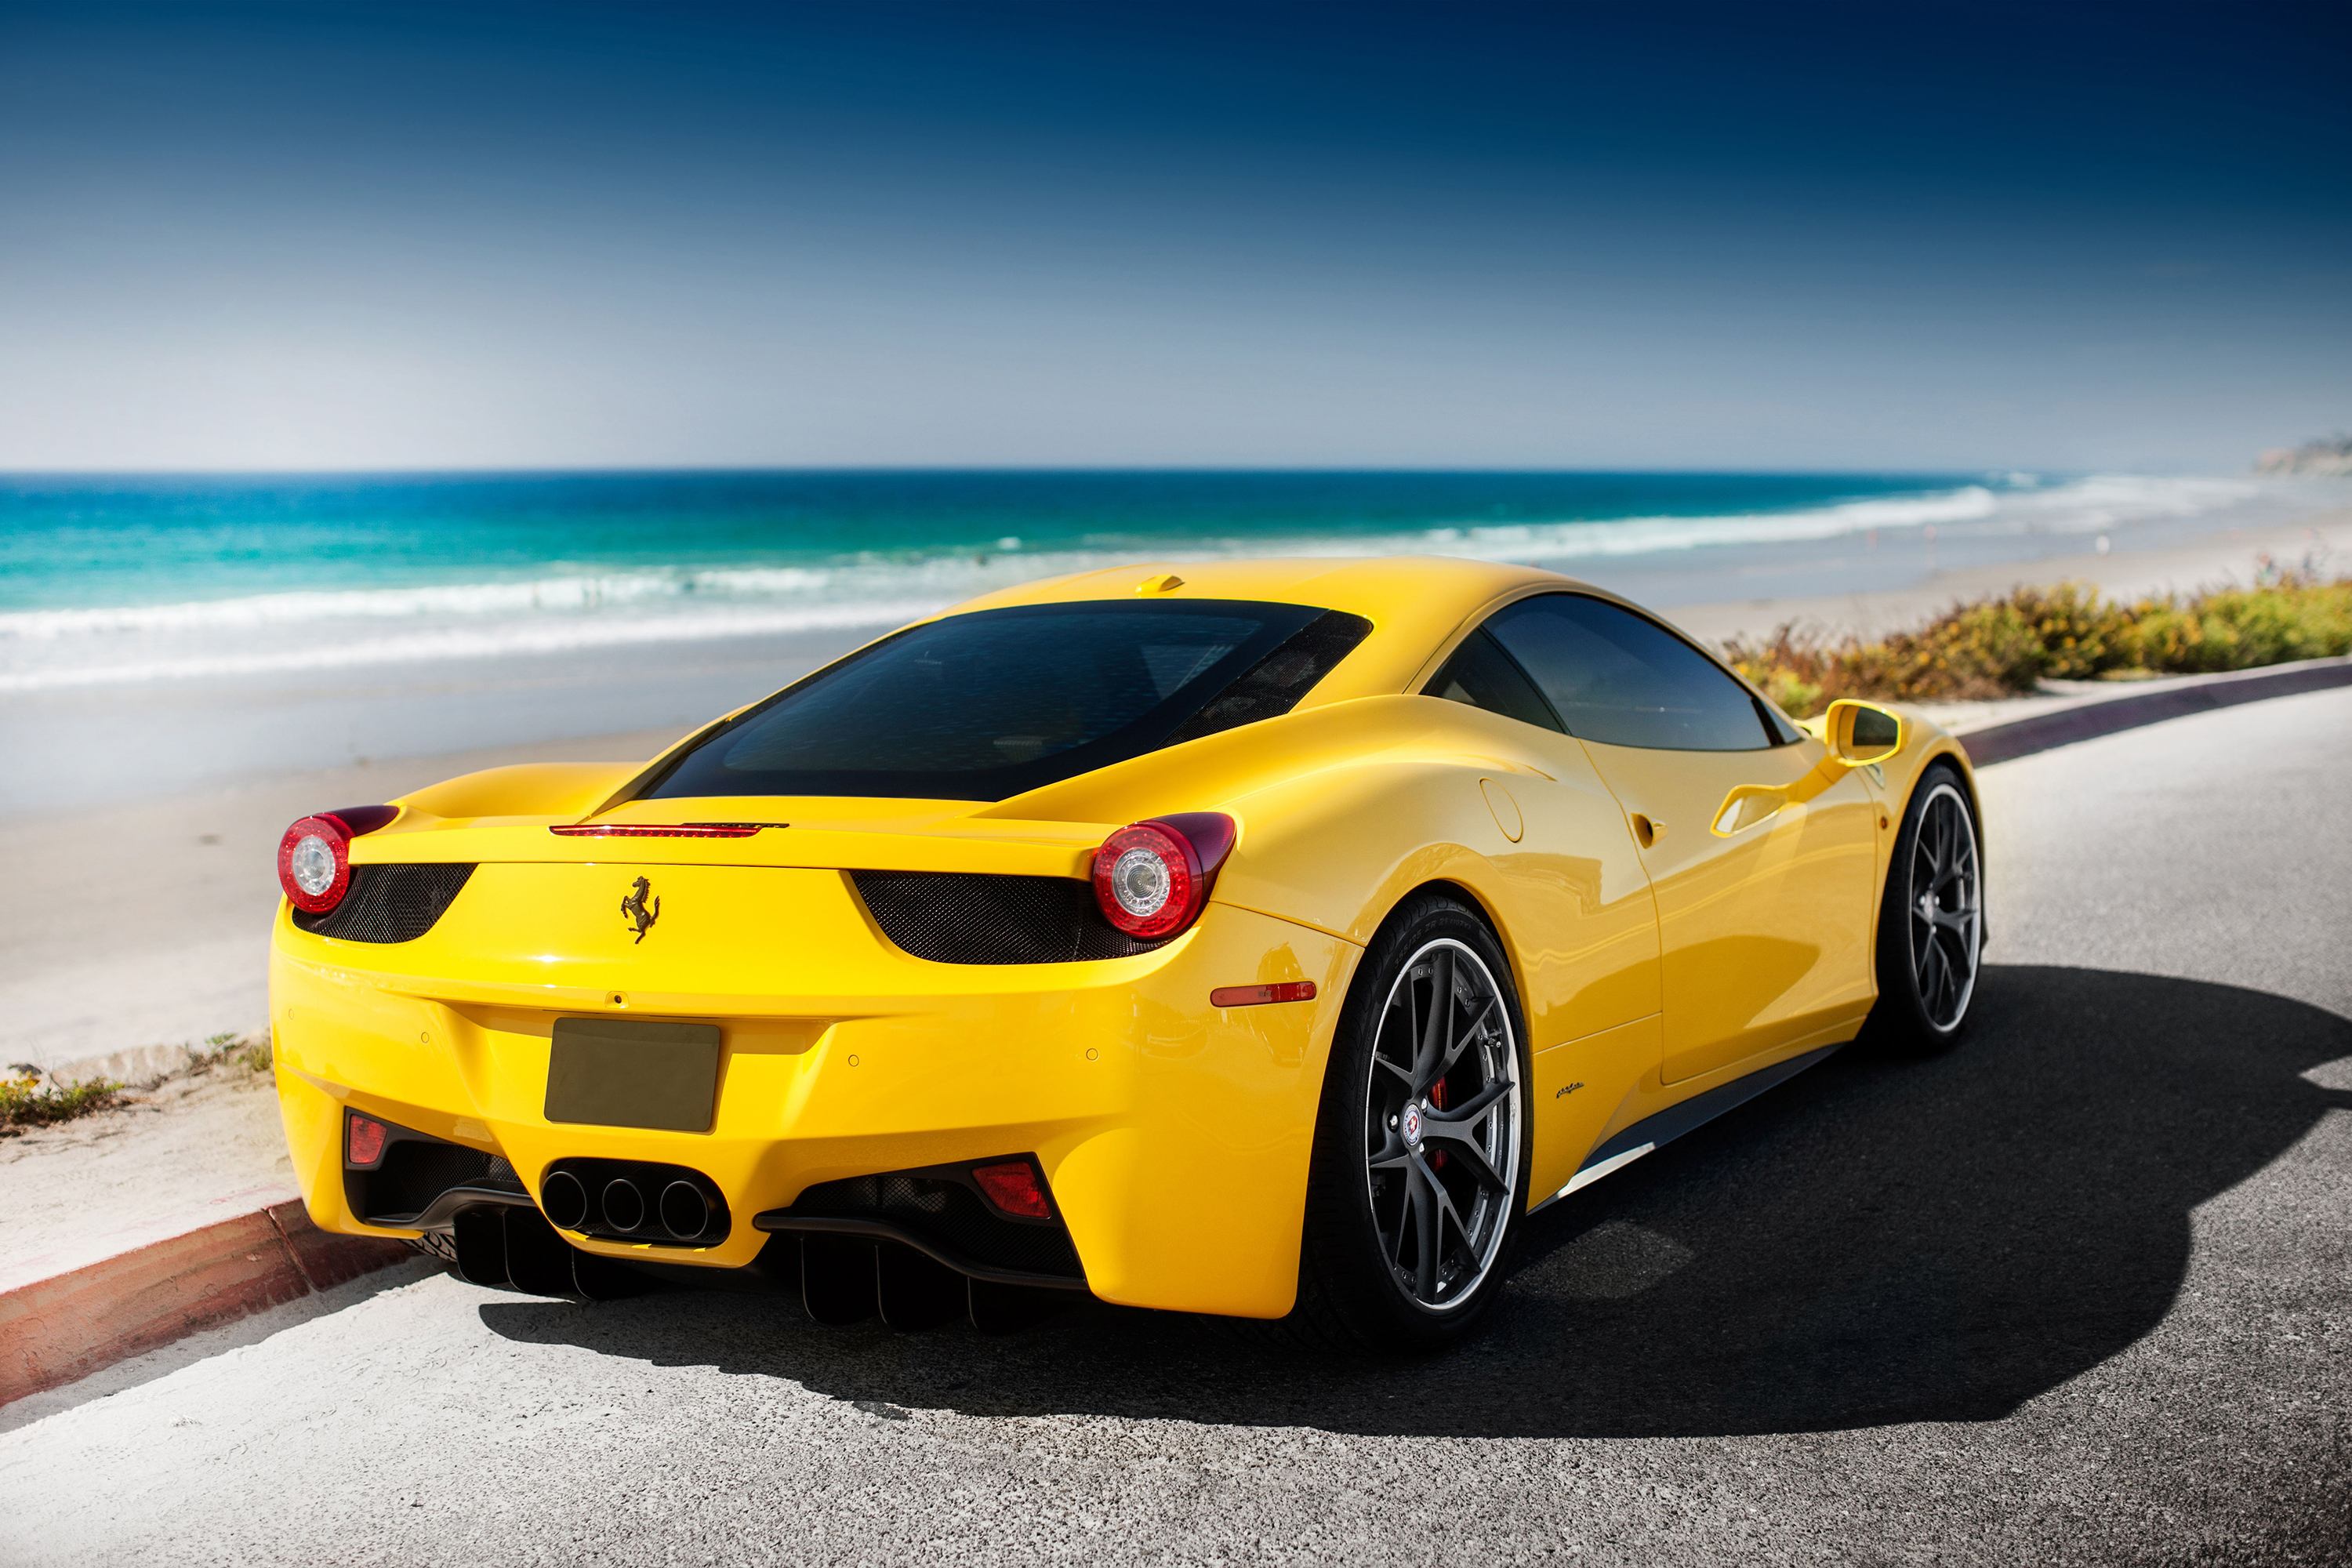 108 ferrari 458 italia hd wallpapers backgrounds for Wallpaper italia